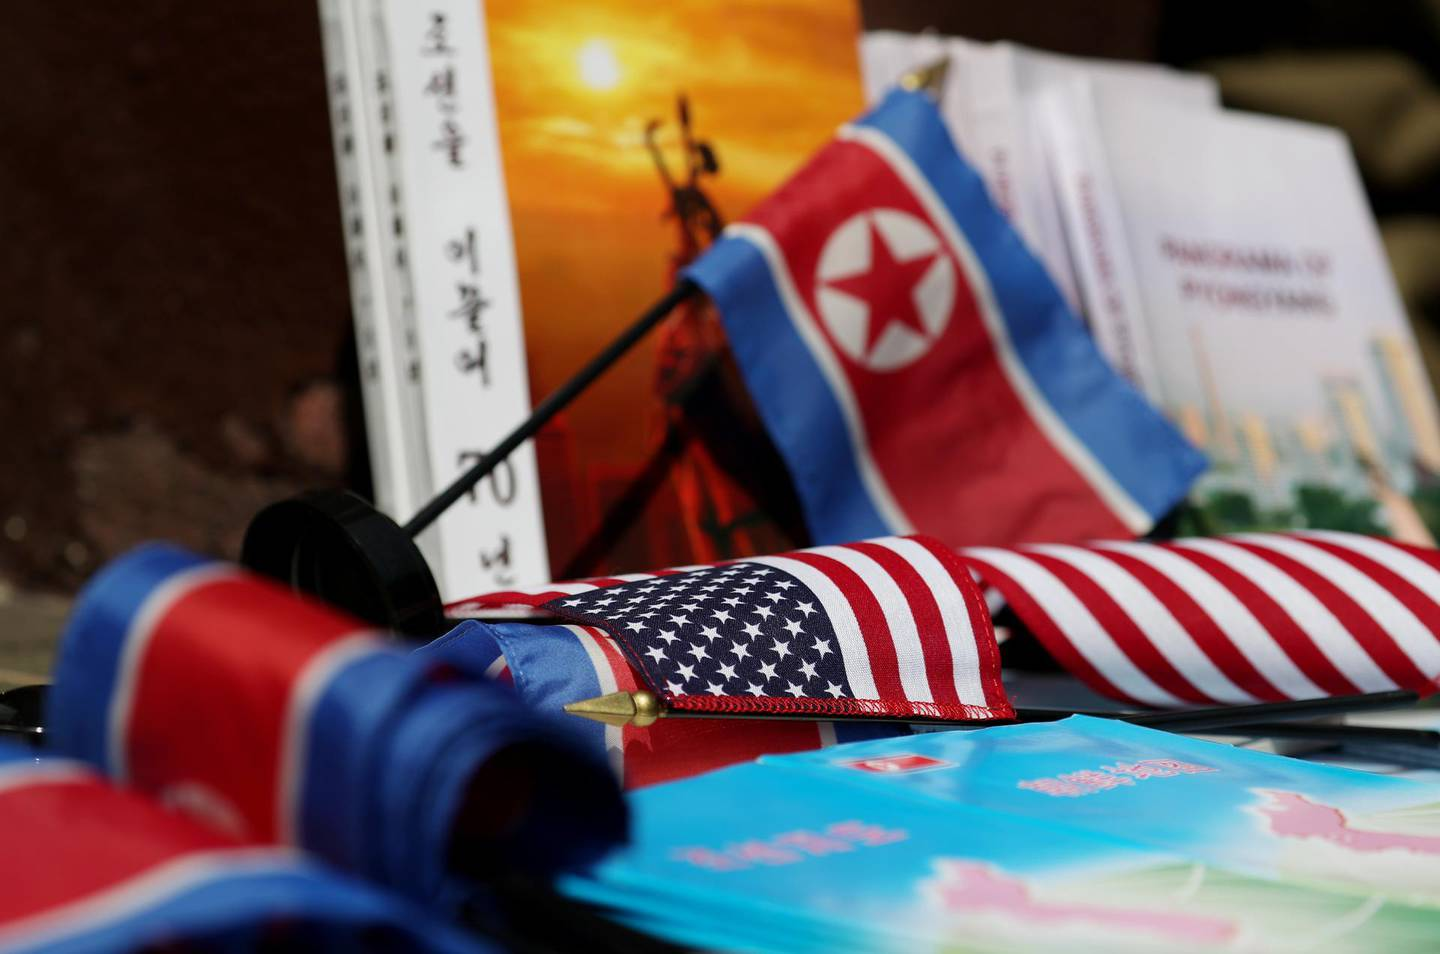 North Korean and American flags and books are displayed for sale at a stall outside the St. Regis hotel, where North Korean leader Kim Jong Un is staying in Singapore, on Monday, June 11, 2018. PresidentDonald Trumpis about to see whether his bet on North Korea will pay off: thatKimJong Un's desire to end his country's economic strangulation and pariah status will prevail over the dictator's fear of relinquishing his nuclear threat. Photographer: SeongJoon Cho/Bloomberg